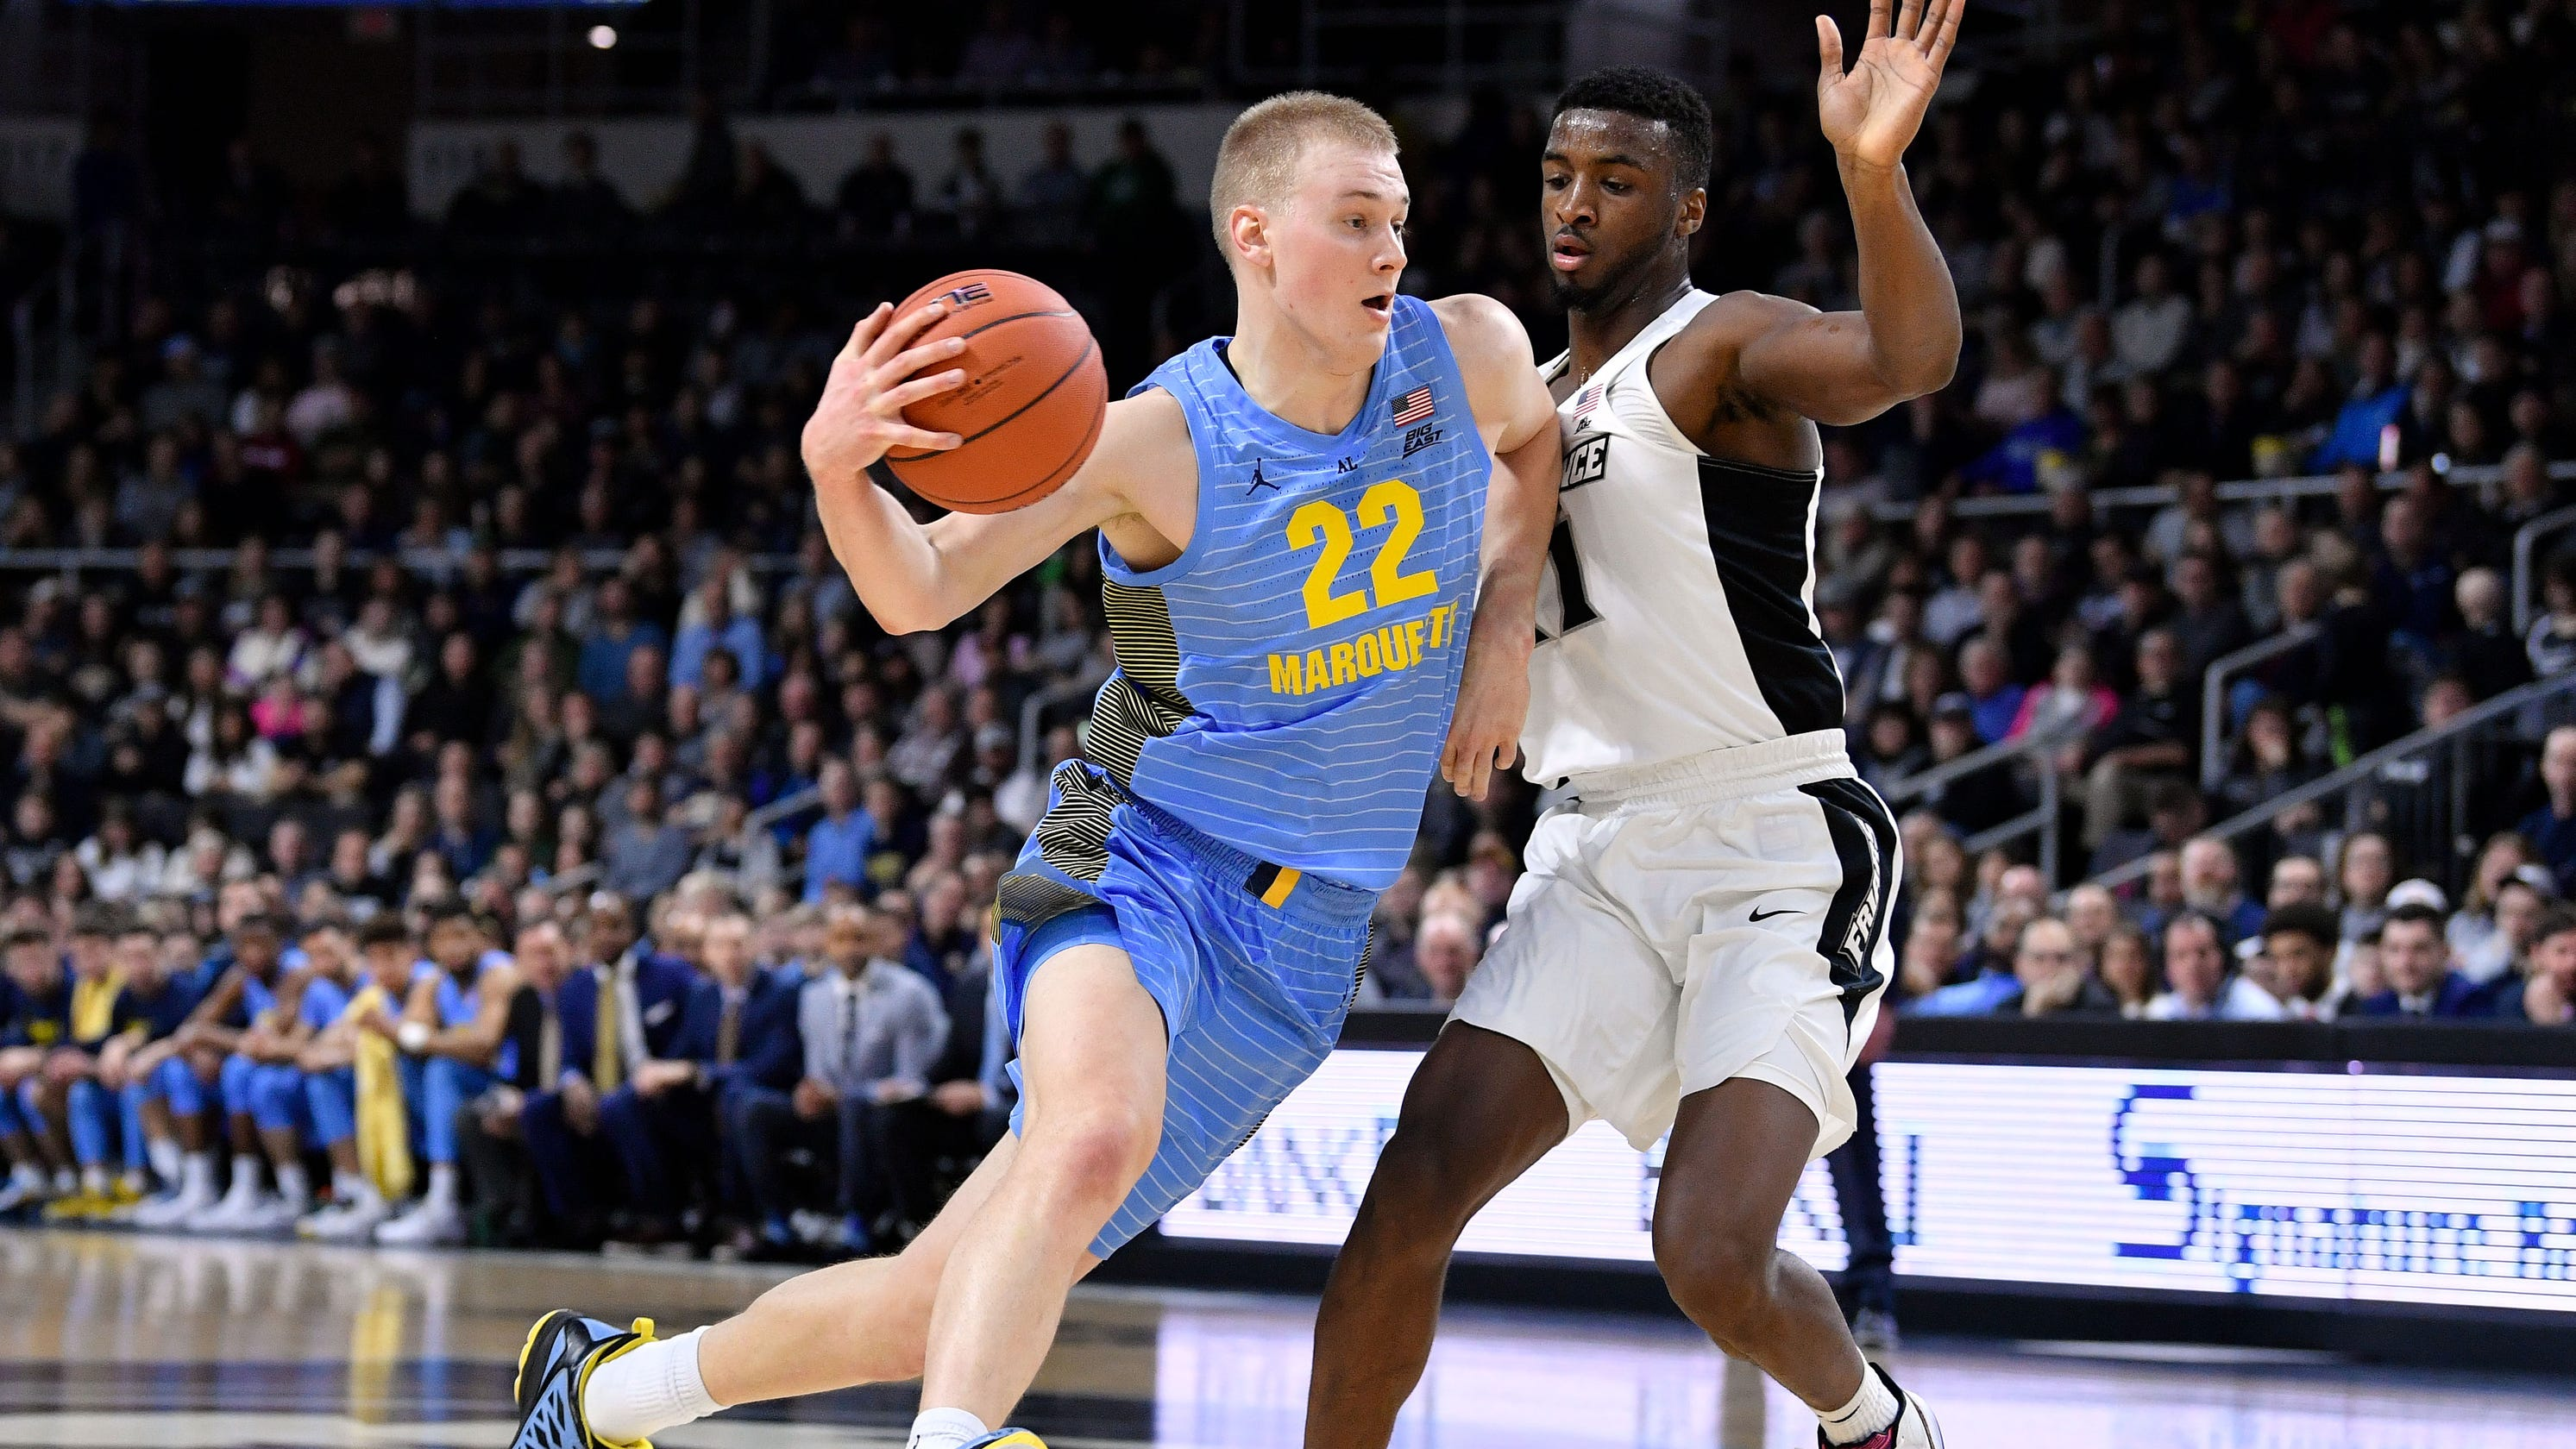 Michigan State basketball adds Joey Hauser: What it means